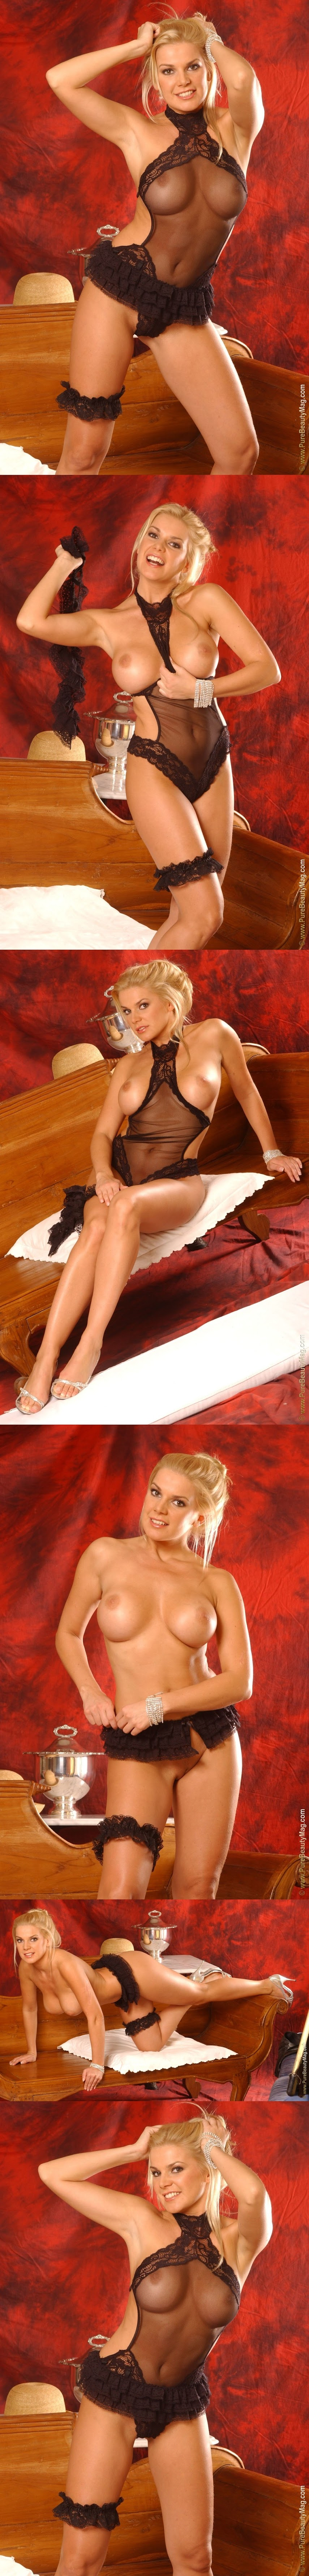 PureBeautyMag PBM  - 2007-01-24 - #s315640 - Lucy B - Bedside - 3008pxReal Street Angels